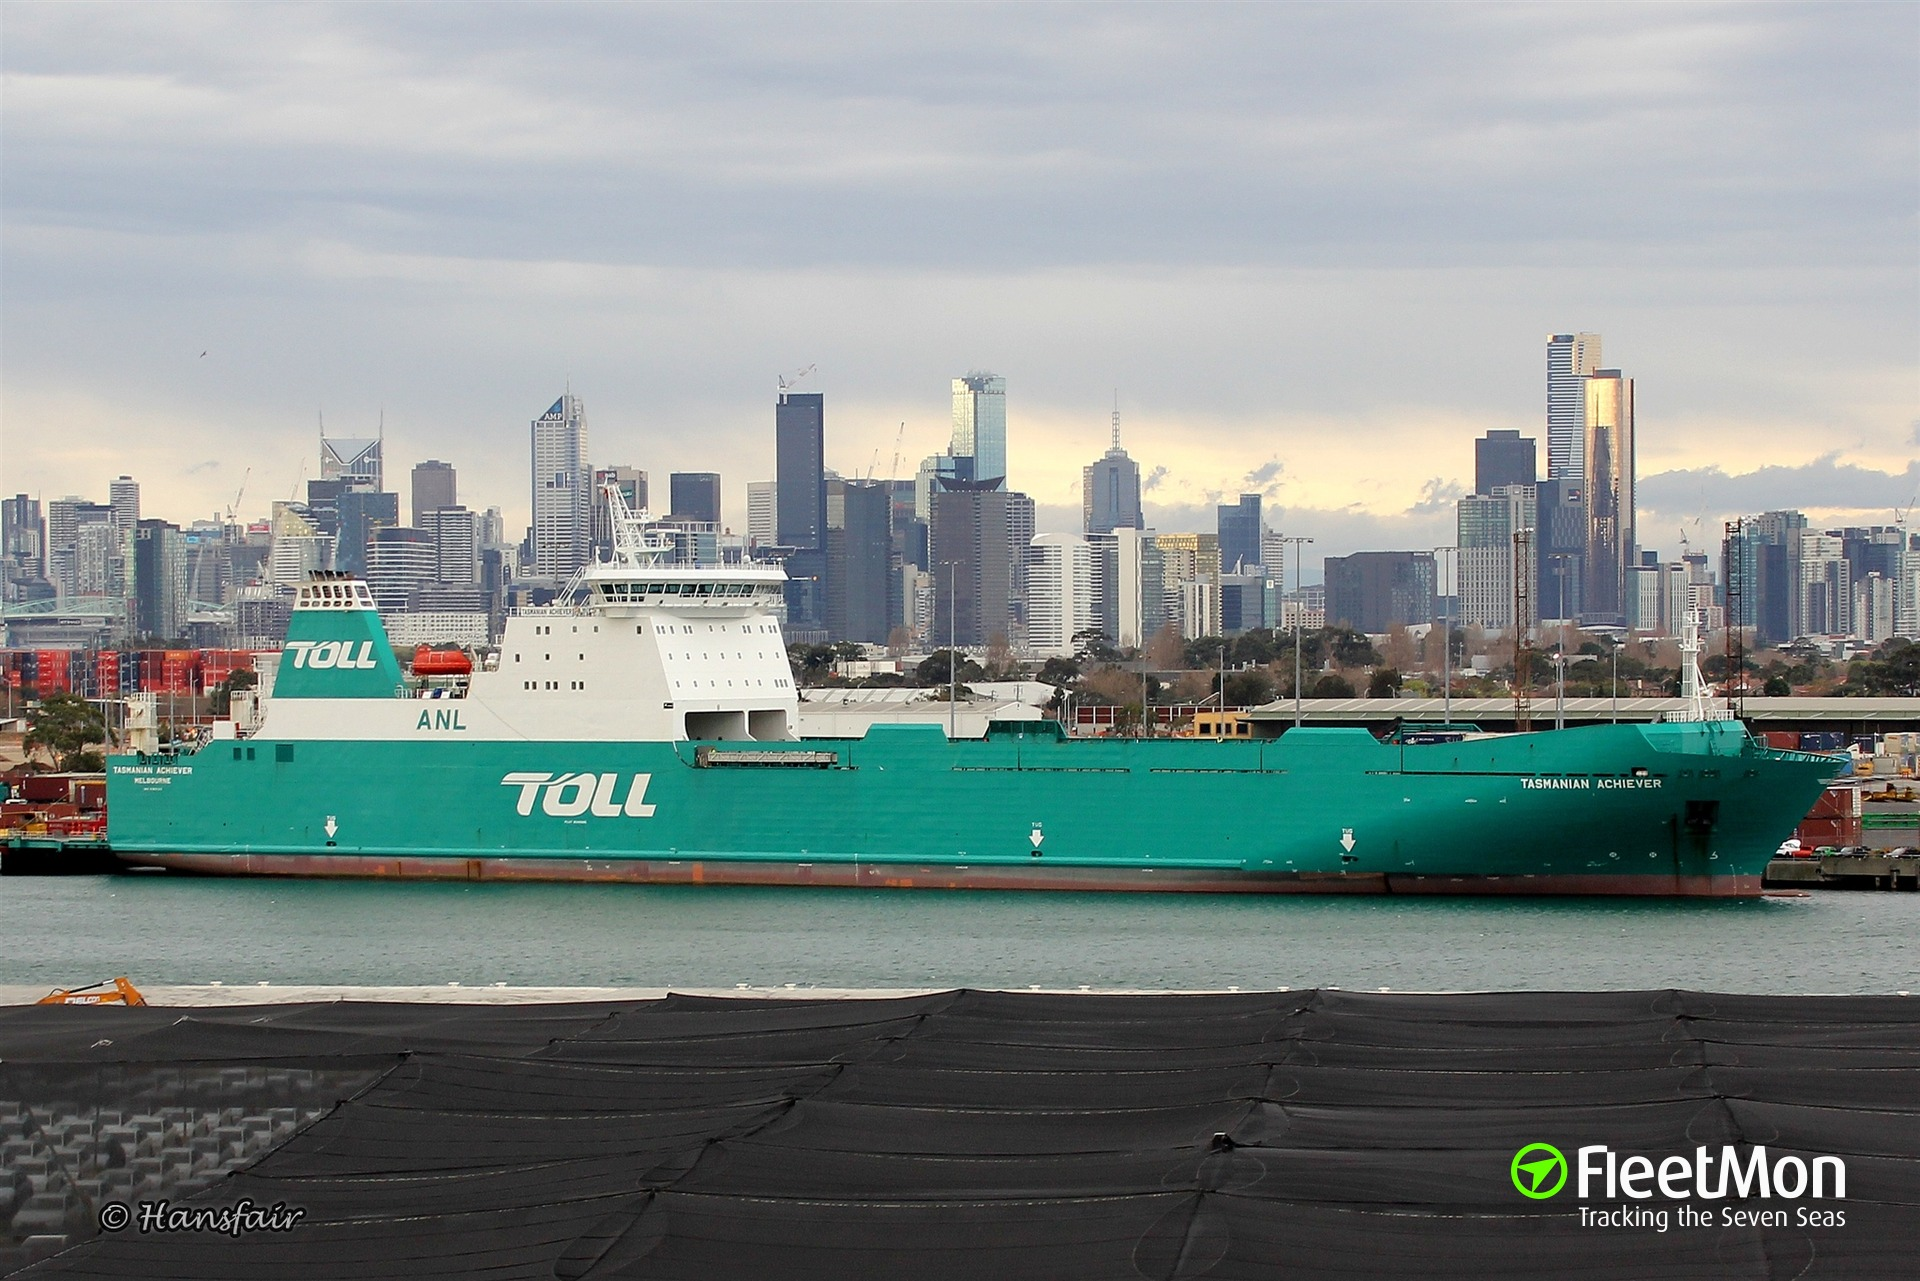 ​Tragic accident in Melbourne: man crushed to death on RoRo ship